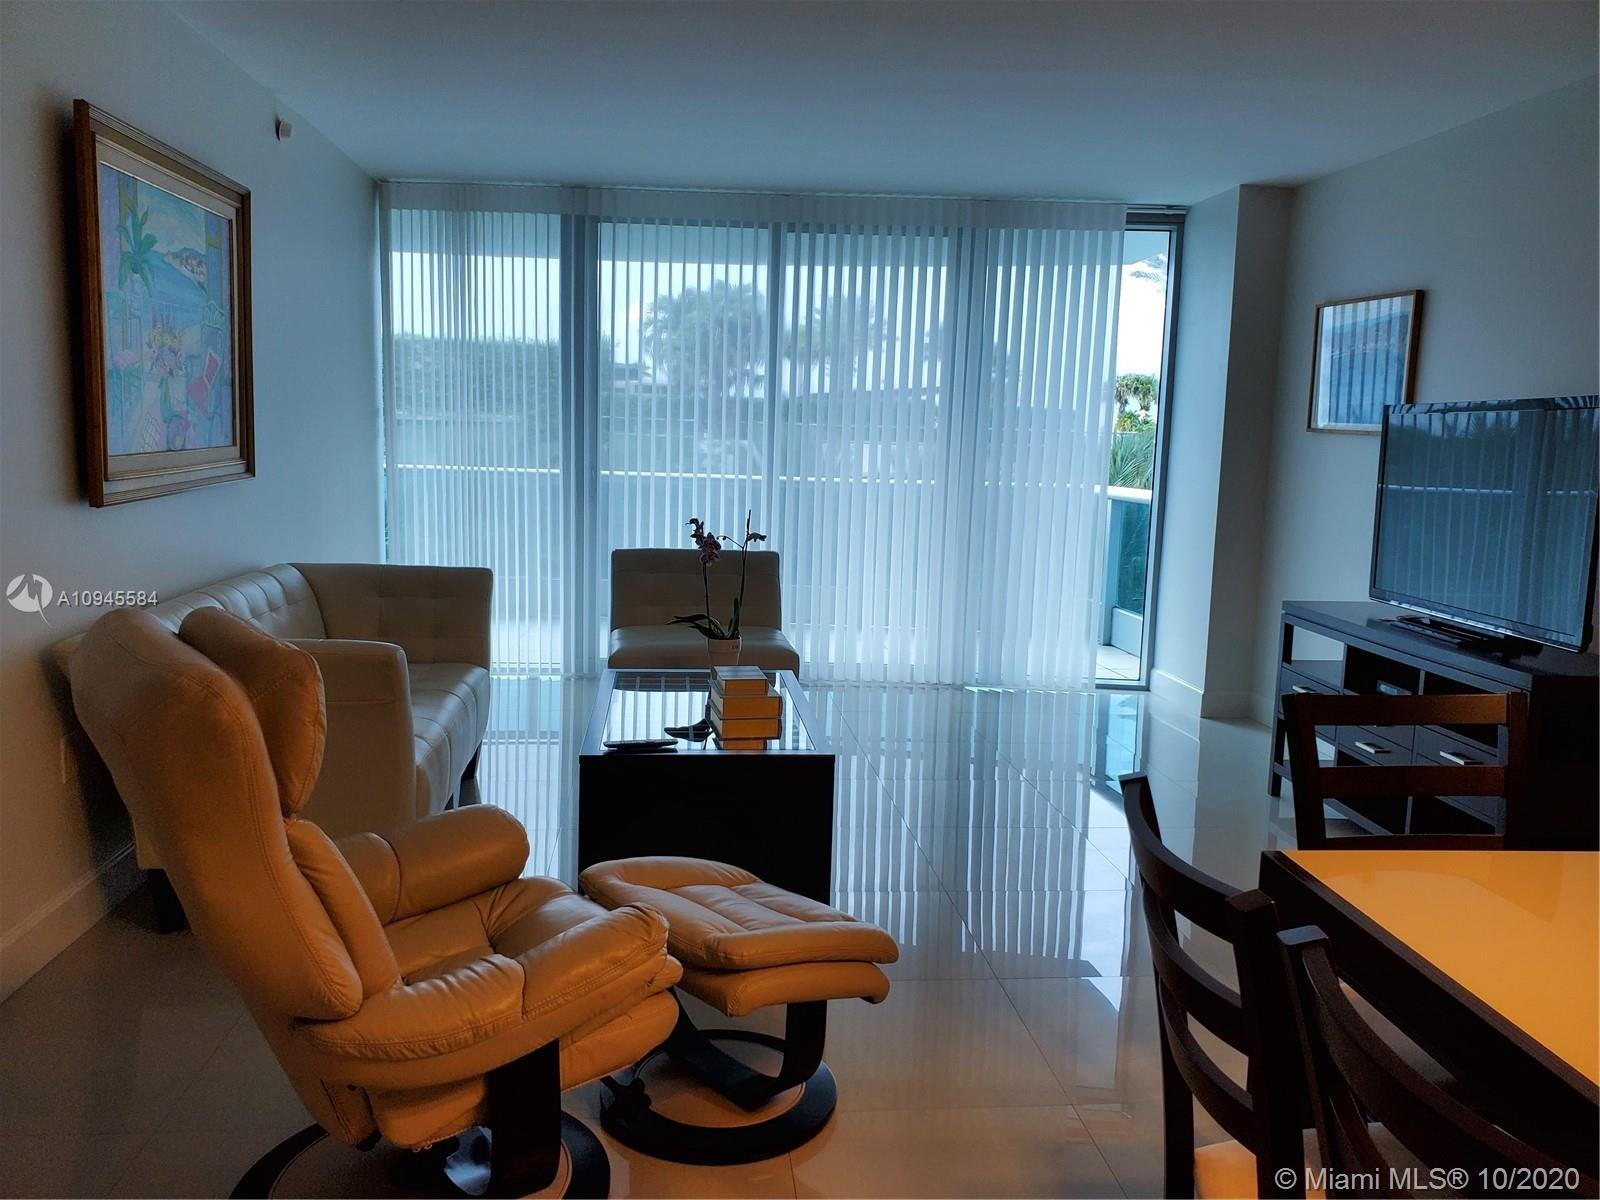 Luxury High-Rise 12 floors and 76 units! Beachfront located in Surfside. High ceilings, floor to cei